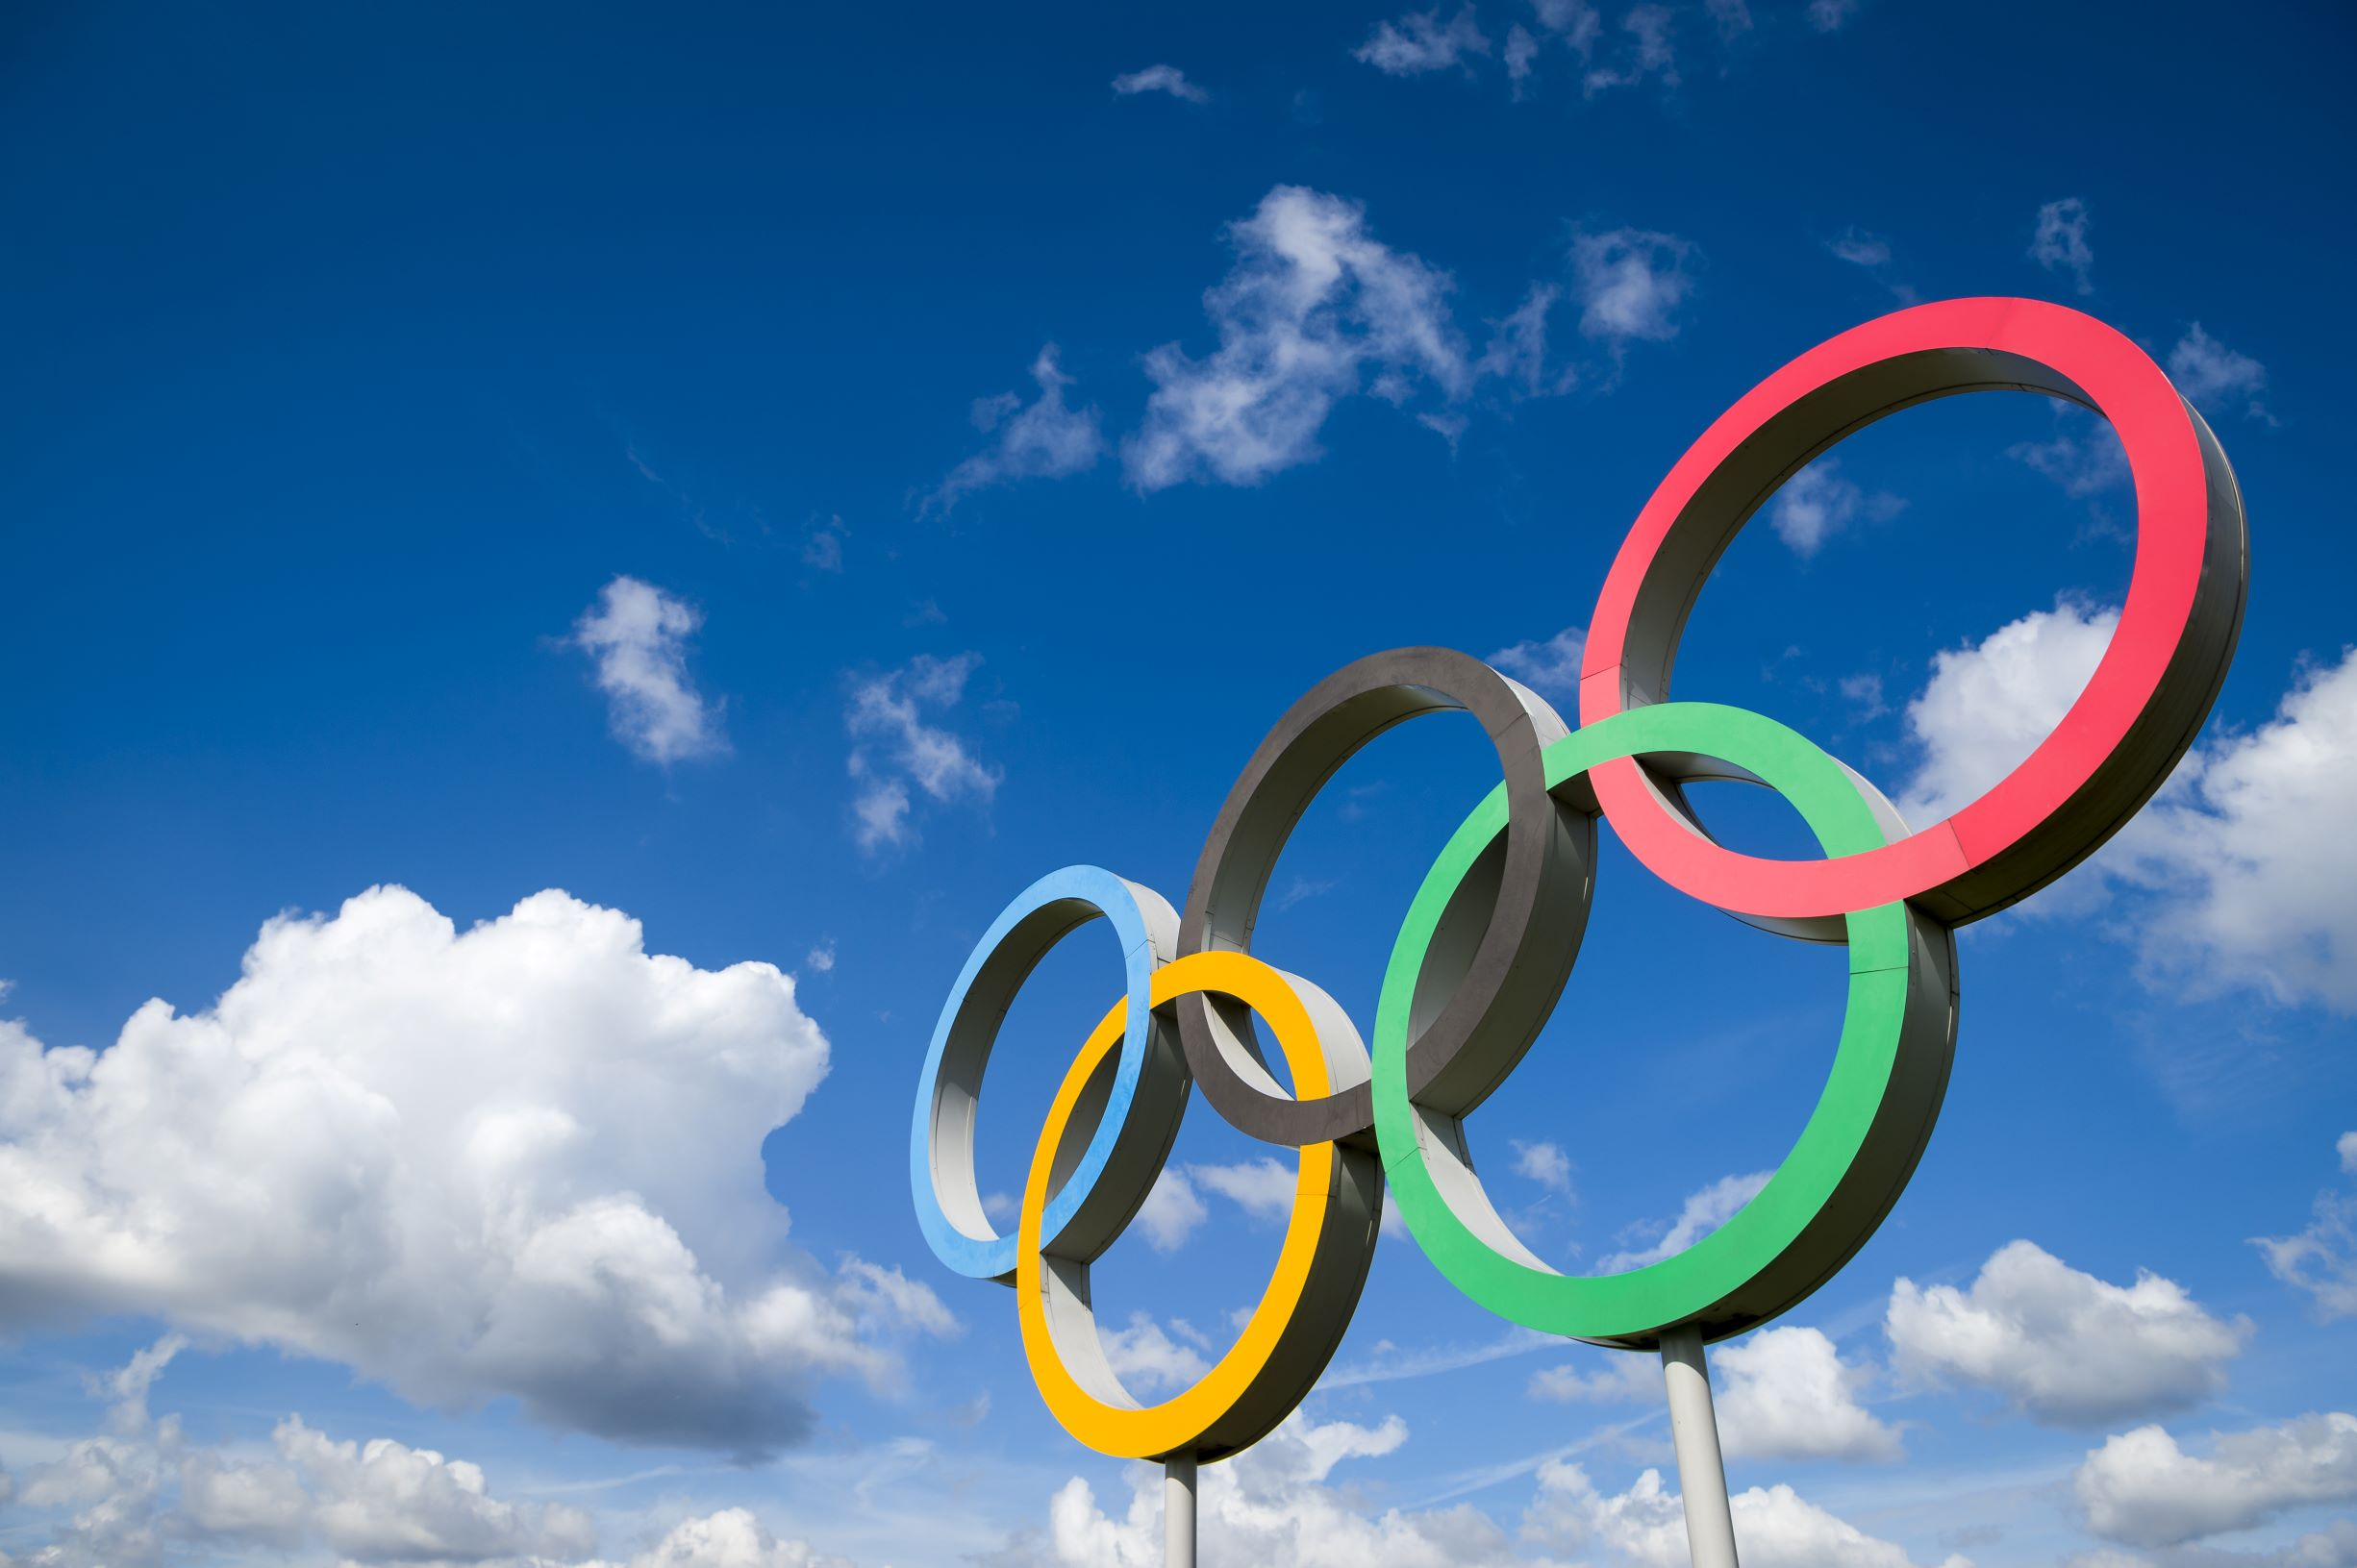 The Olympic symbol, made up of five interconnected coloured rings, under a blue sky